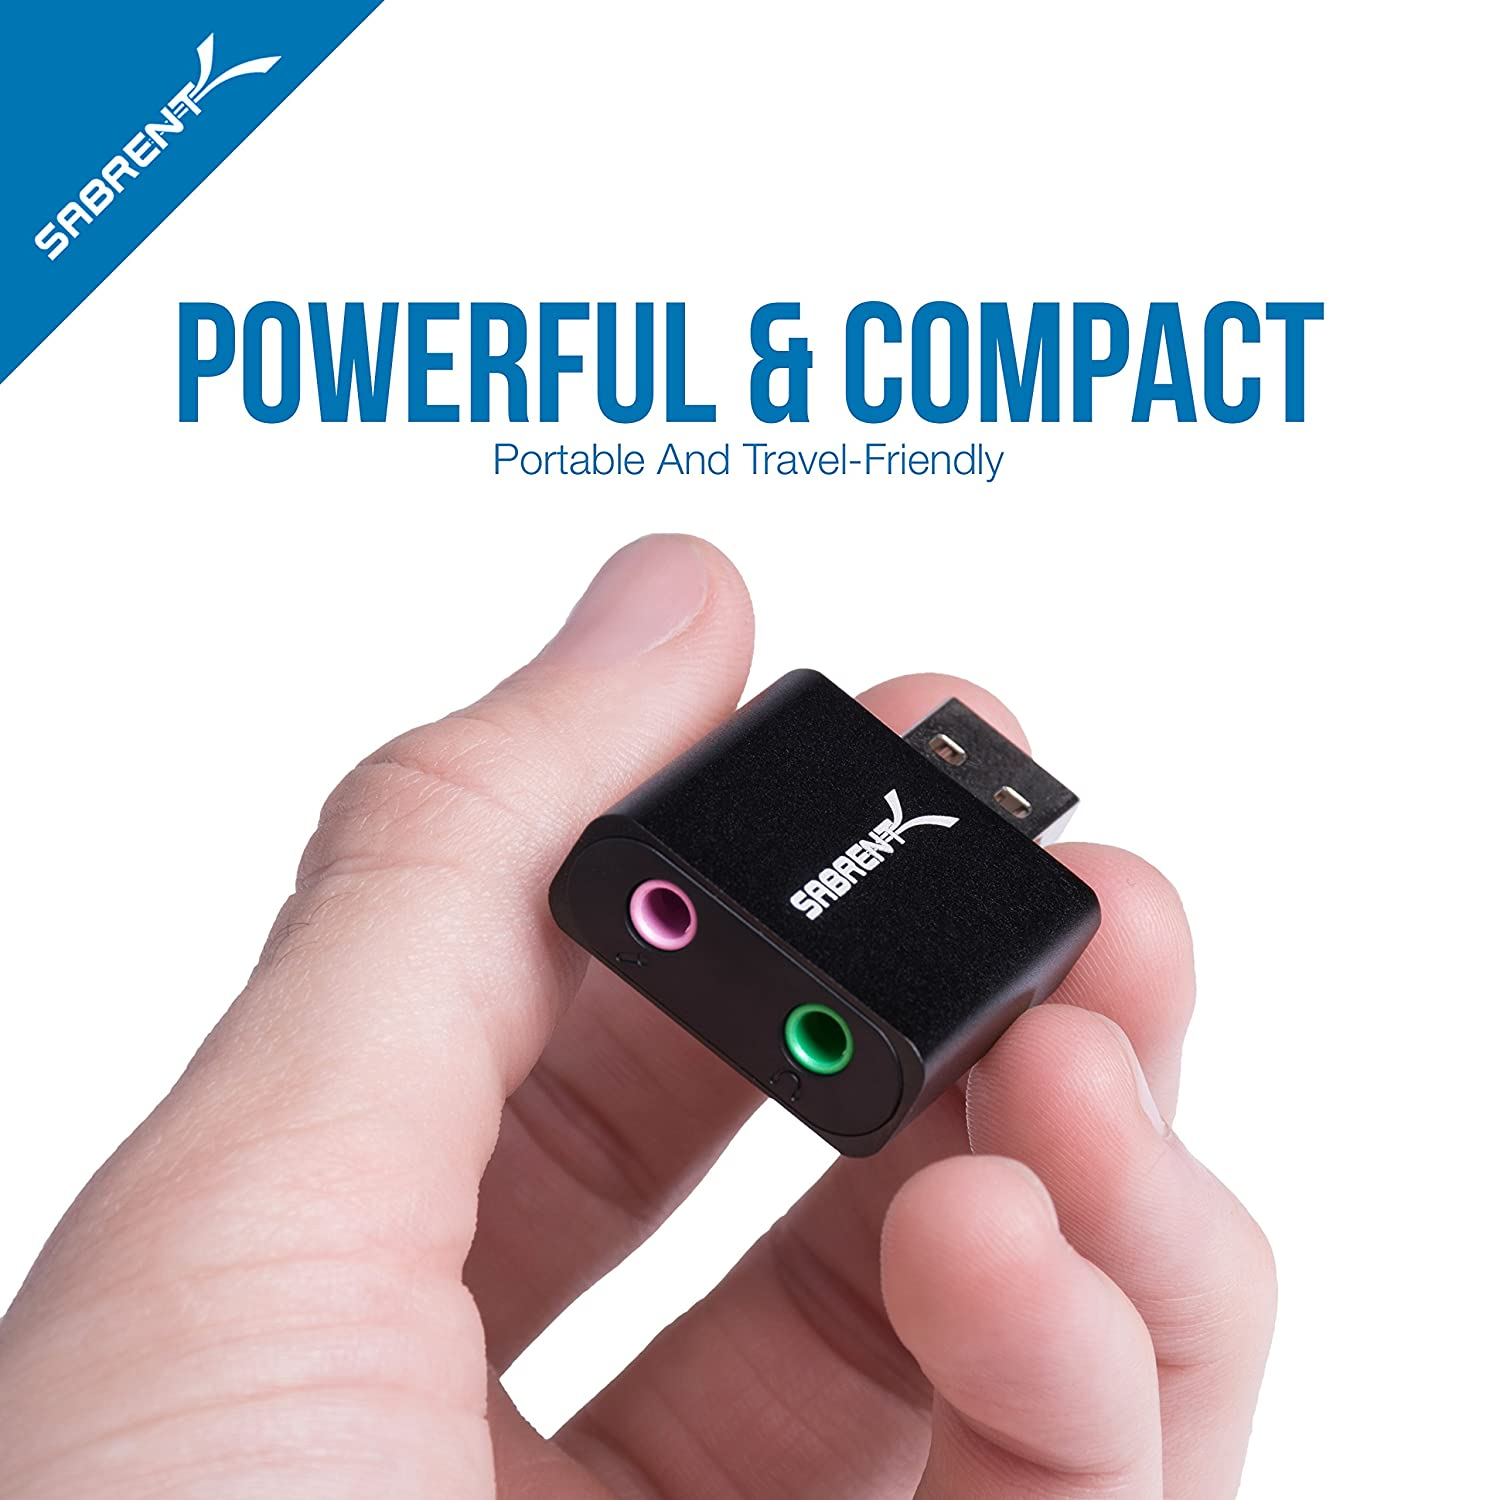 Sabrent Aluminum USB External Stereo Sound Adapter for Windows and Mac Plug and Play No Drivers Needed. Silver AU-EMAC